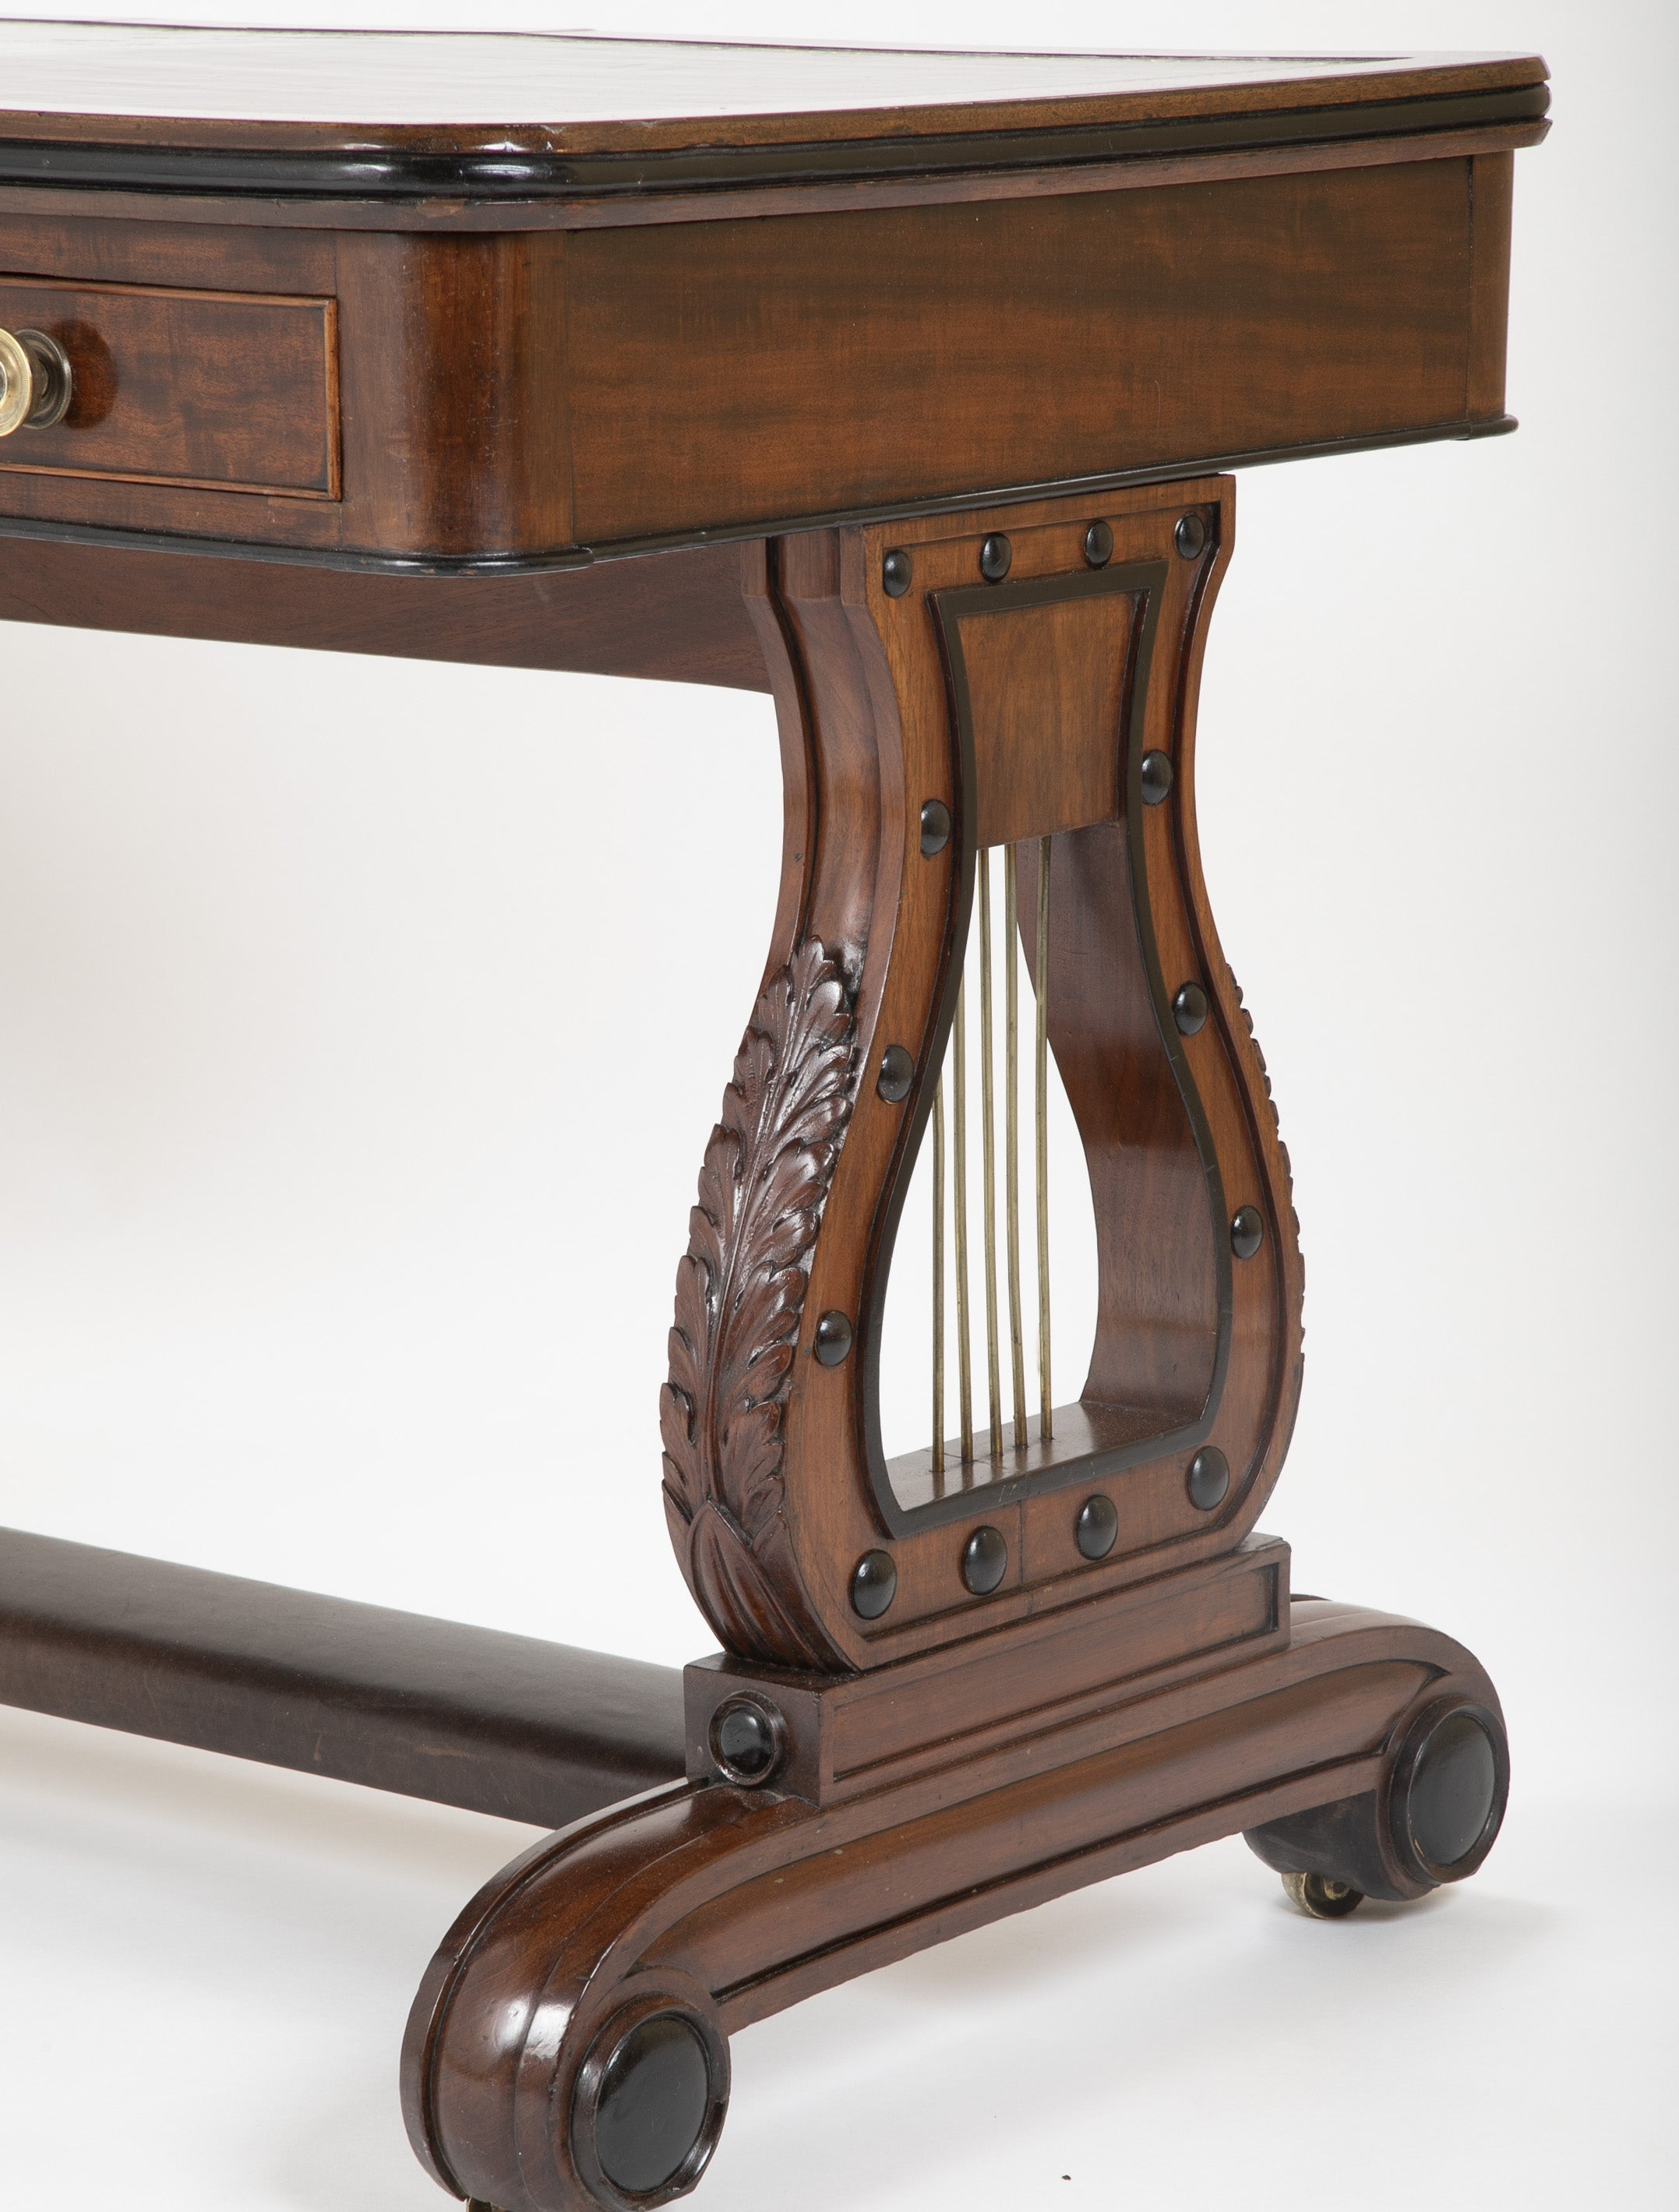 English Regency Mahogany and Ebonized Wood Lyre-End Sofa / Writing Table